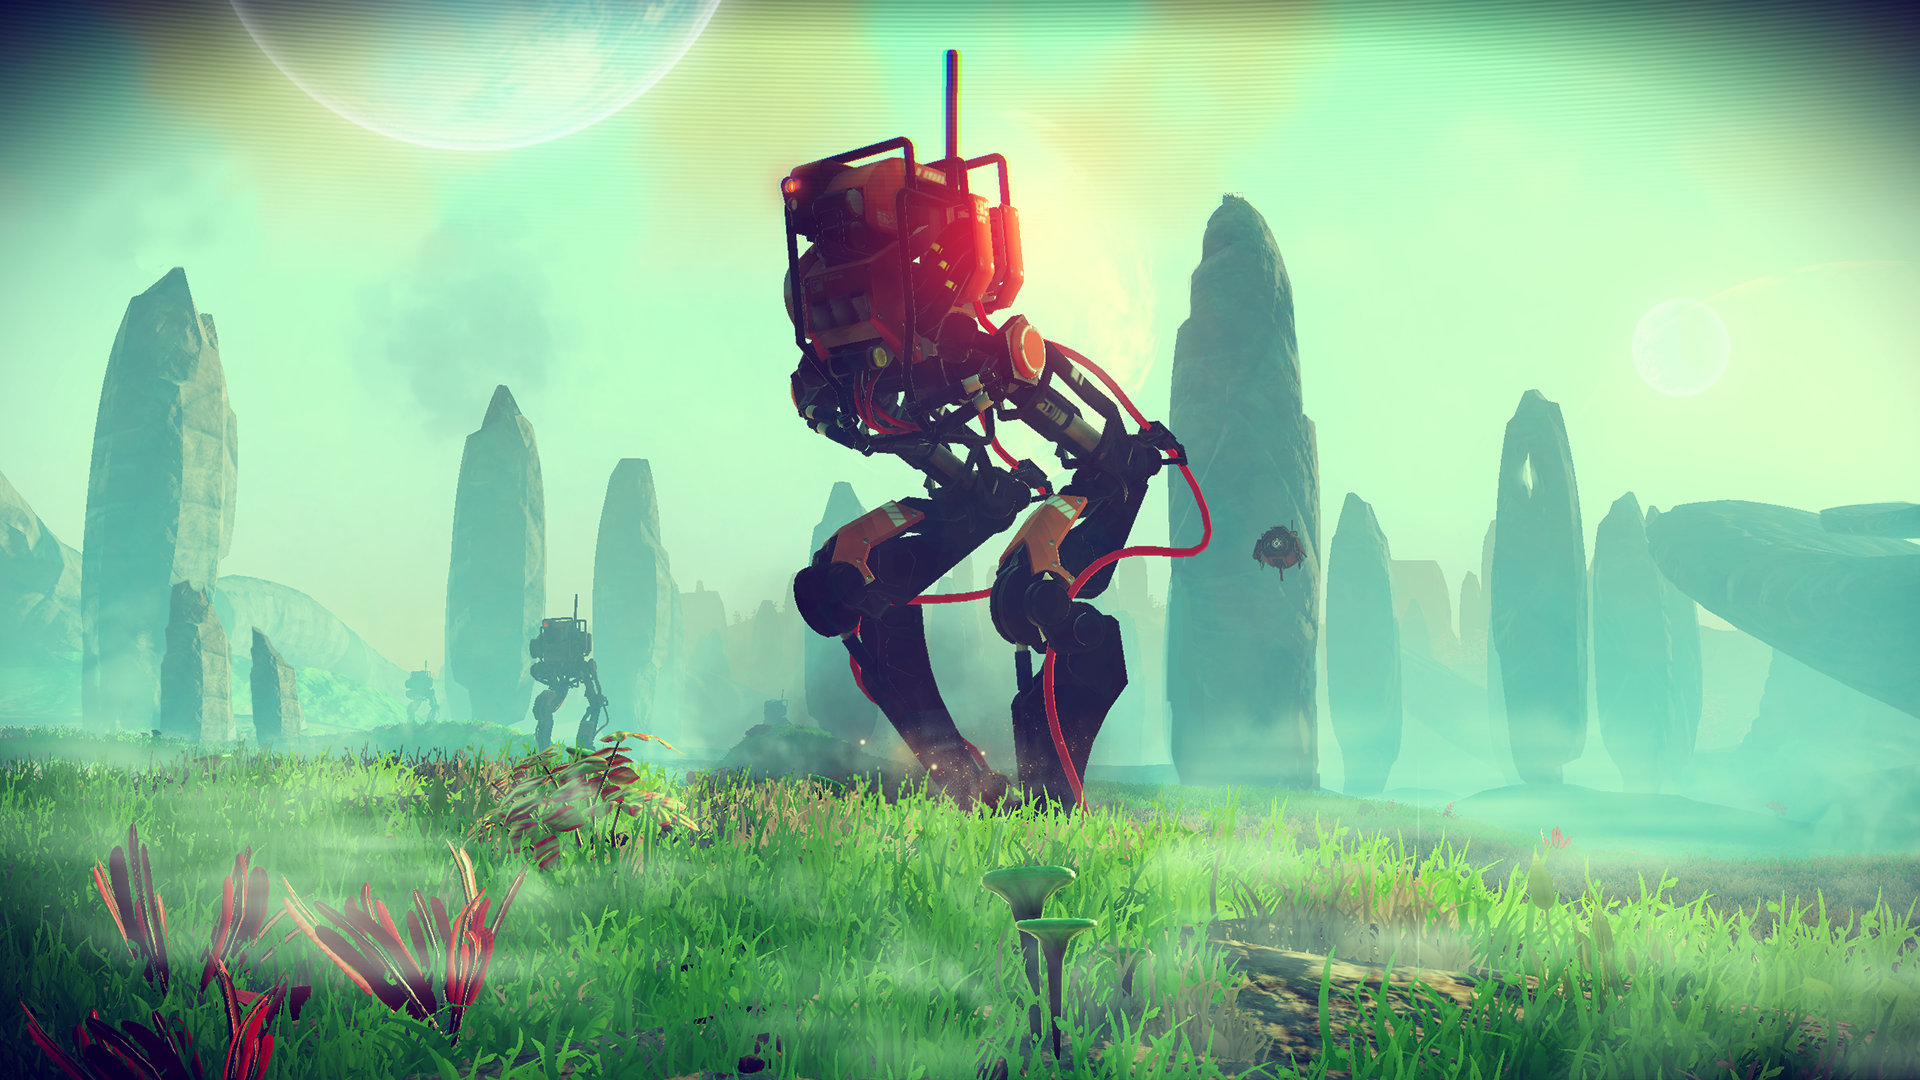 No Mans Sky Under Investigation From Advertising Standards Authority OvalWalker